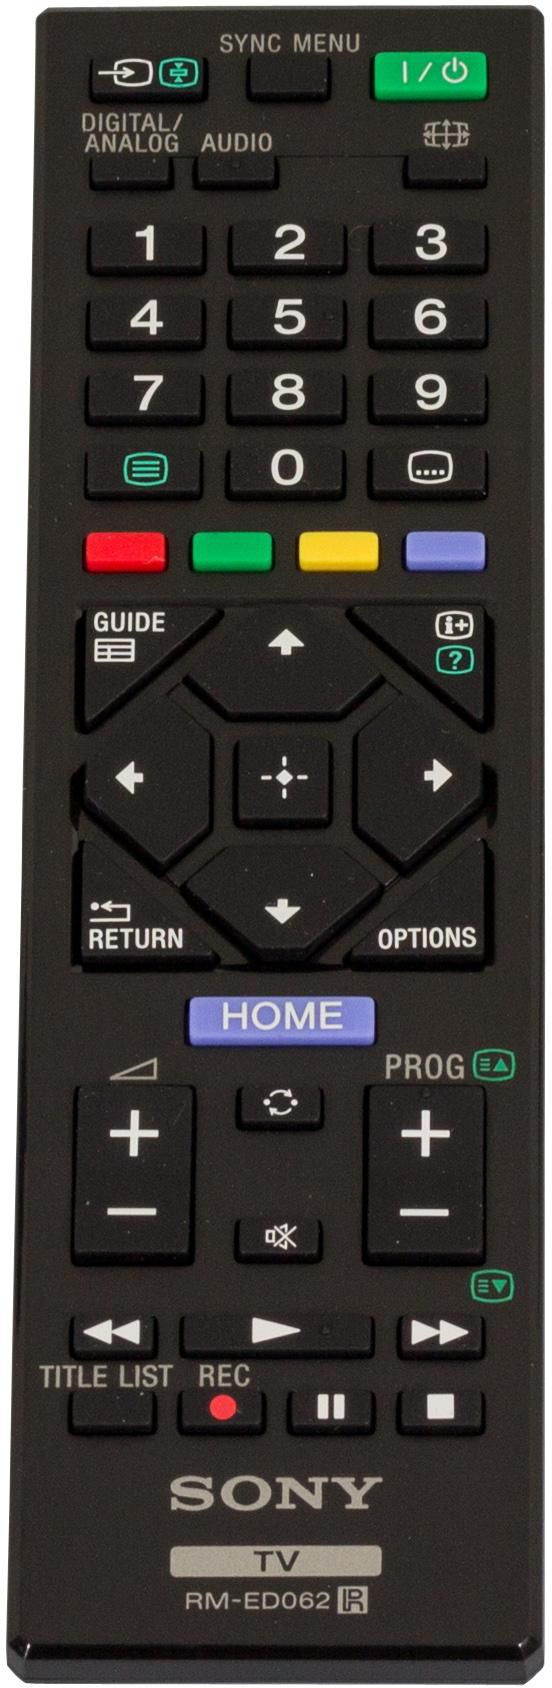 Sony REMOTE (RM-ED062) TCN 17TV018